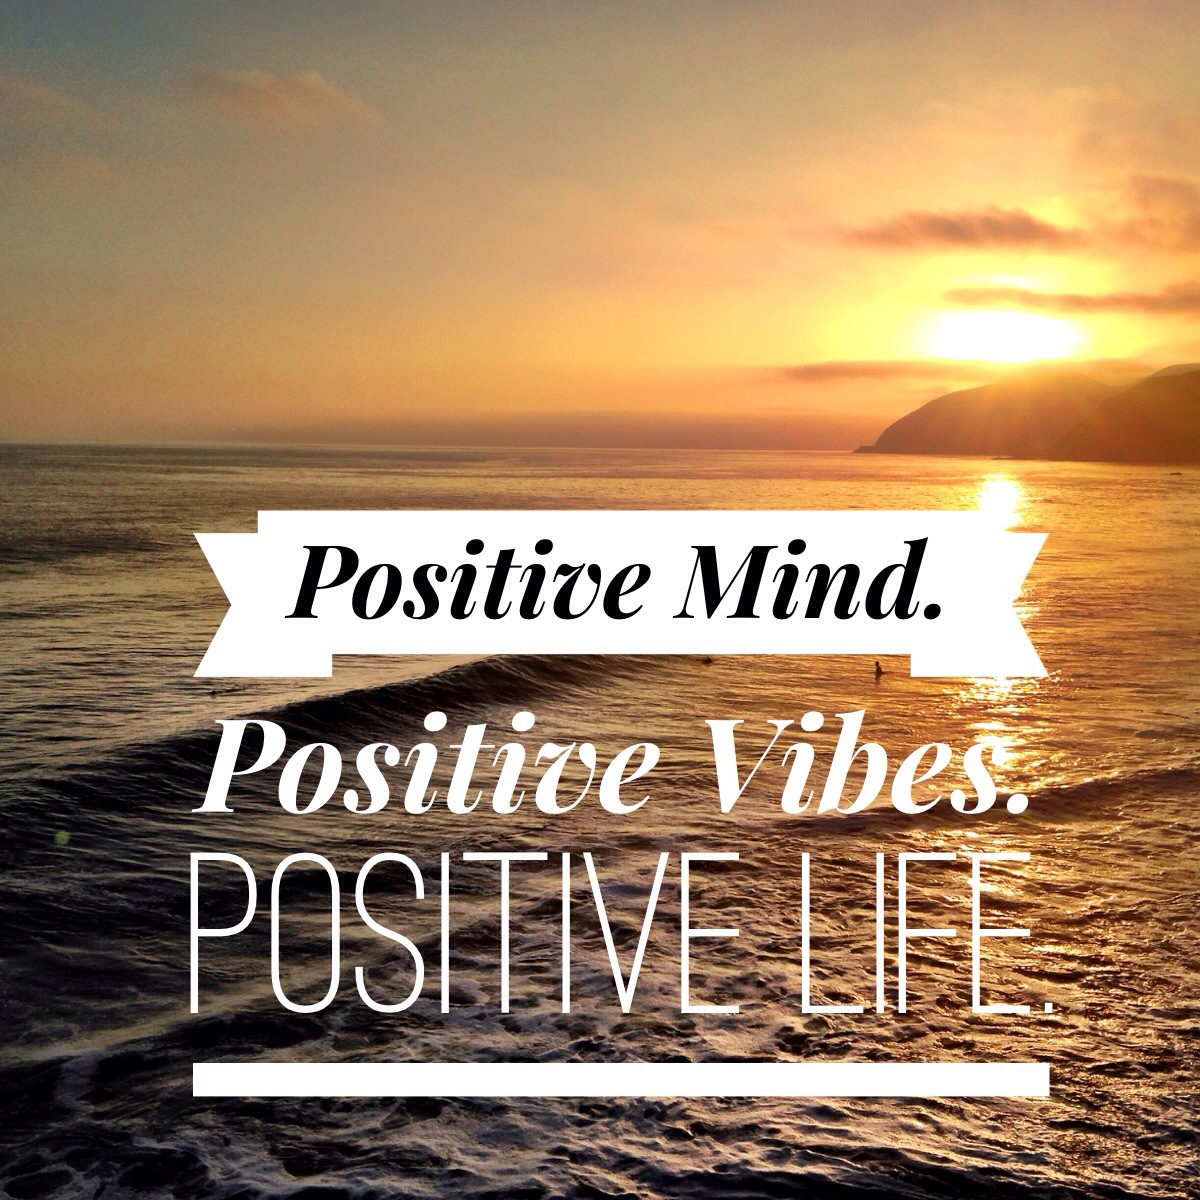 Positive Mind Positive Life Quotes. QuotesGram